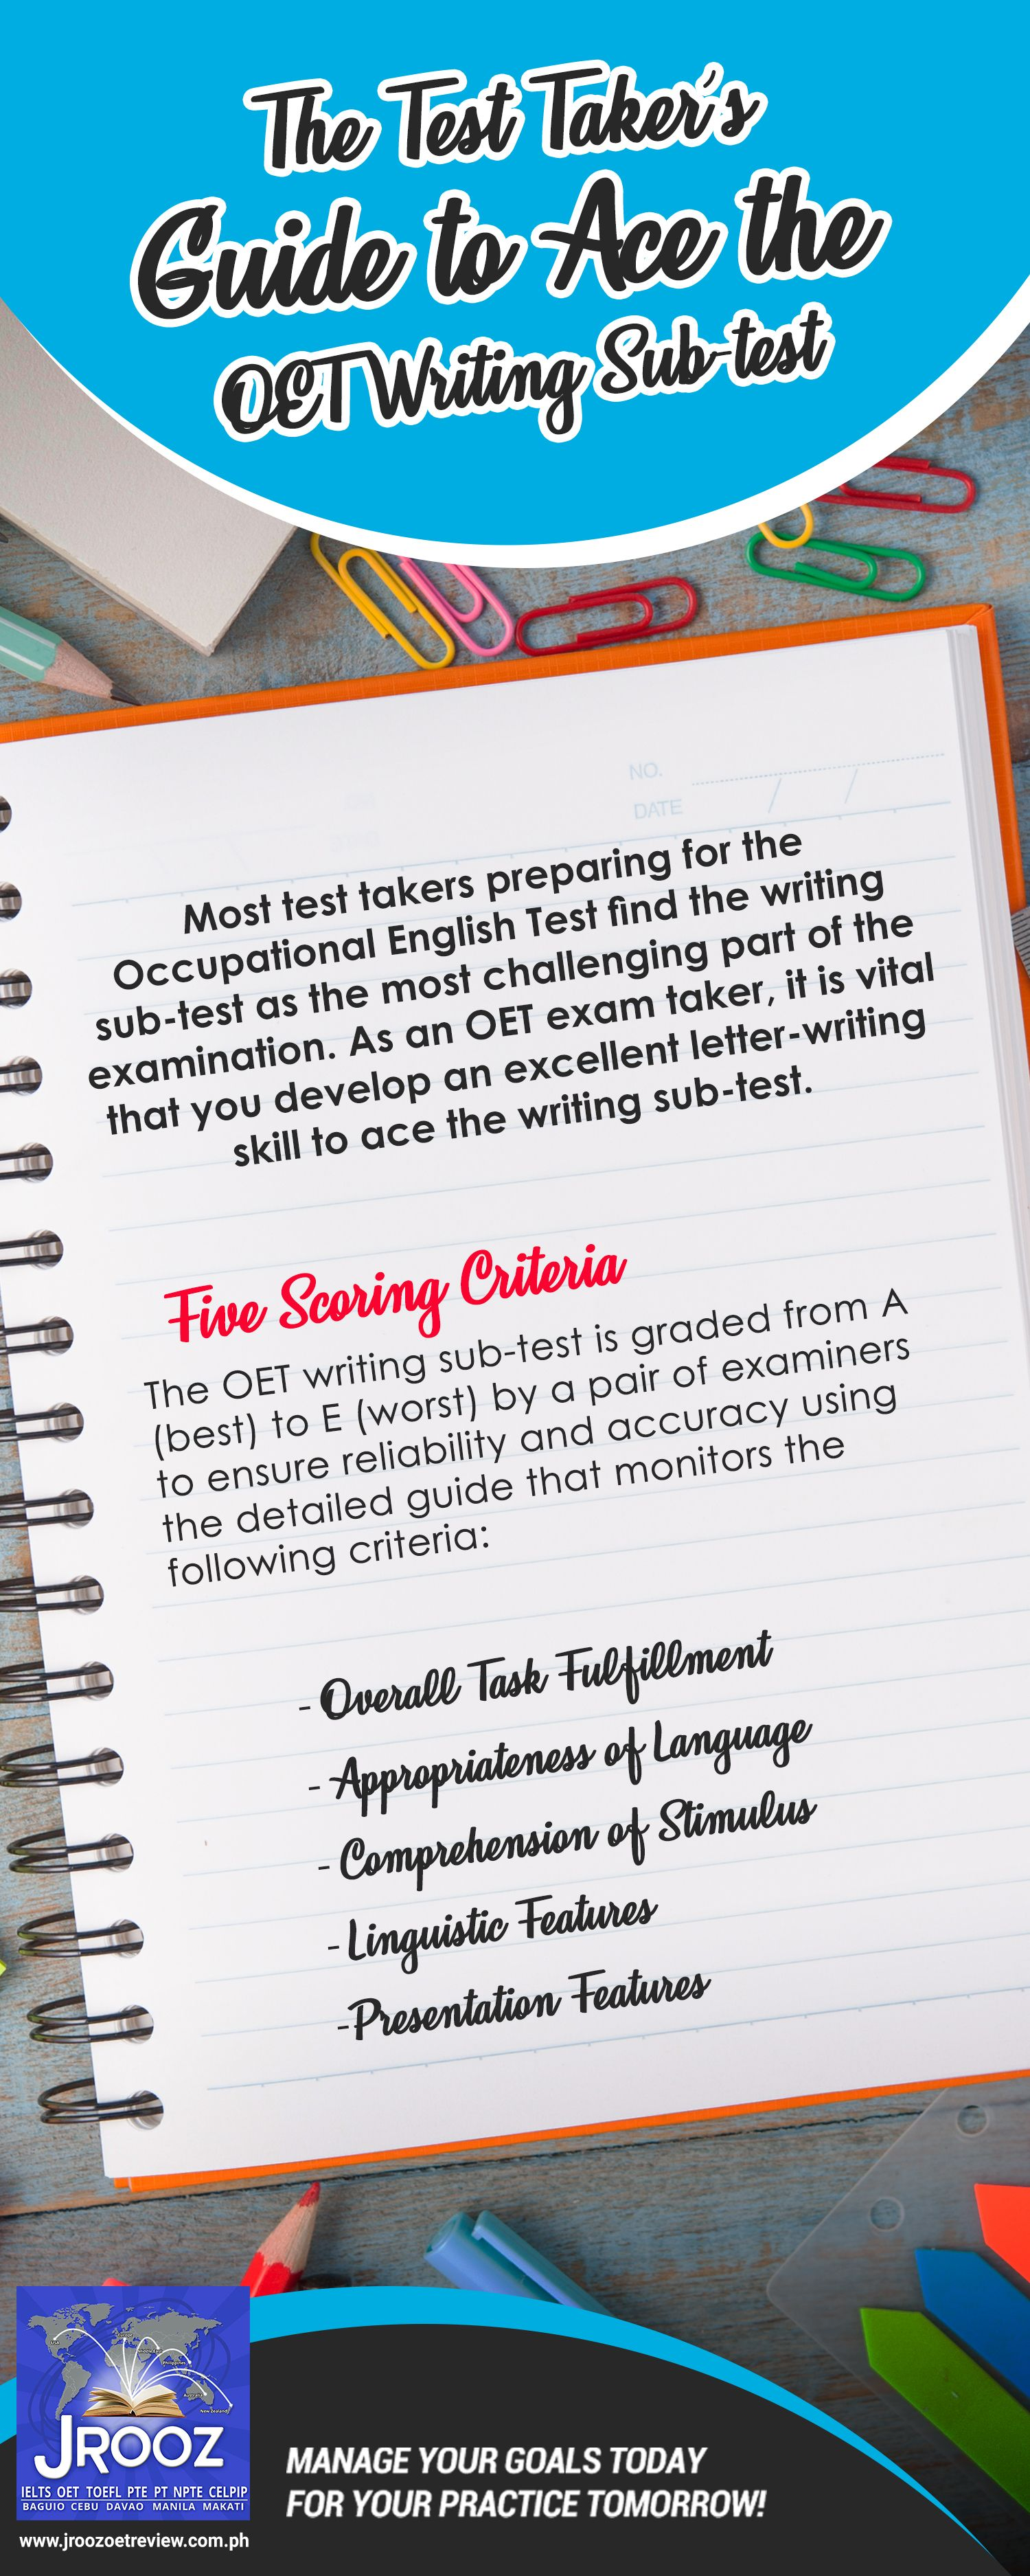 The Test Taker's Guide to Ace the OET Writing Sub-test